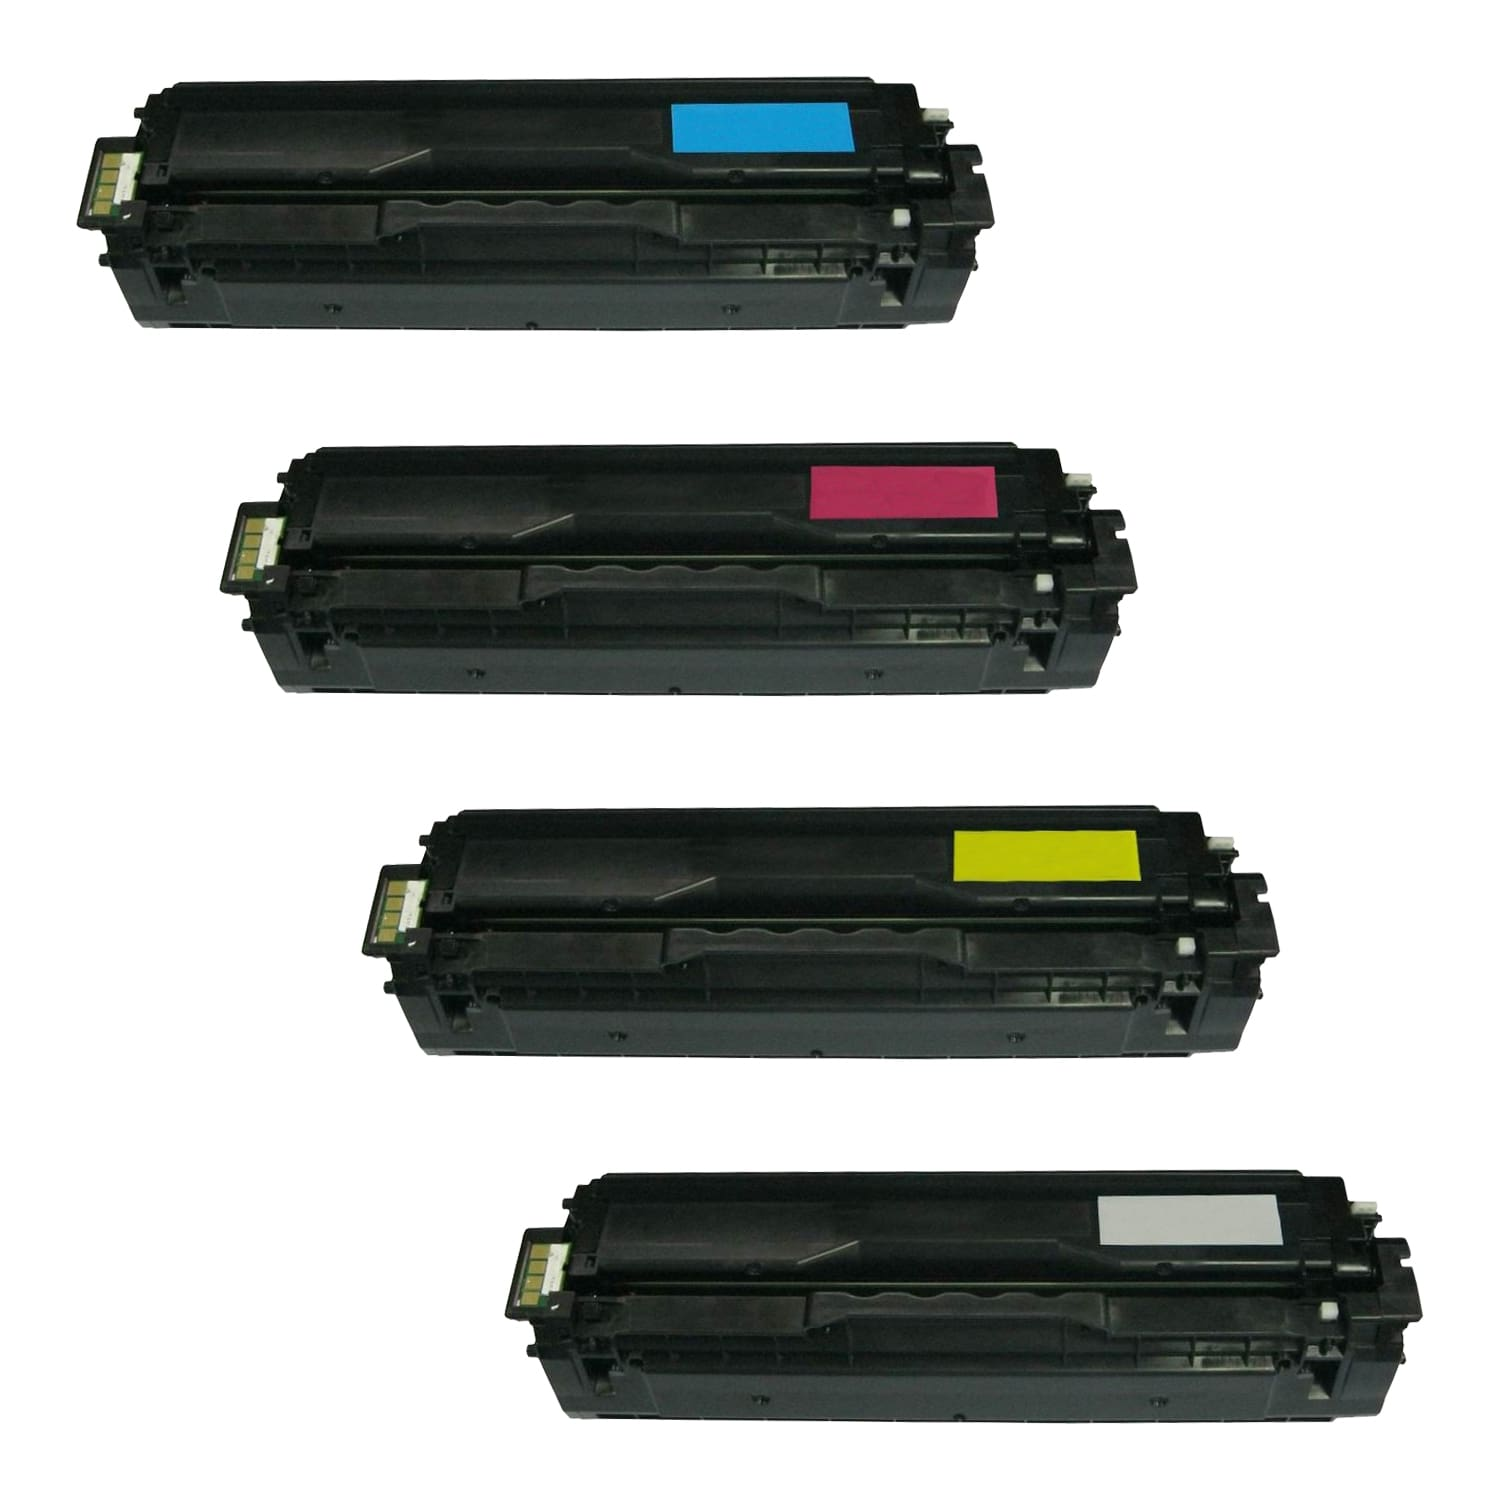 Compatible Samsung 504S Toner Pack - 4 Cartridges